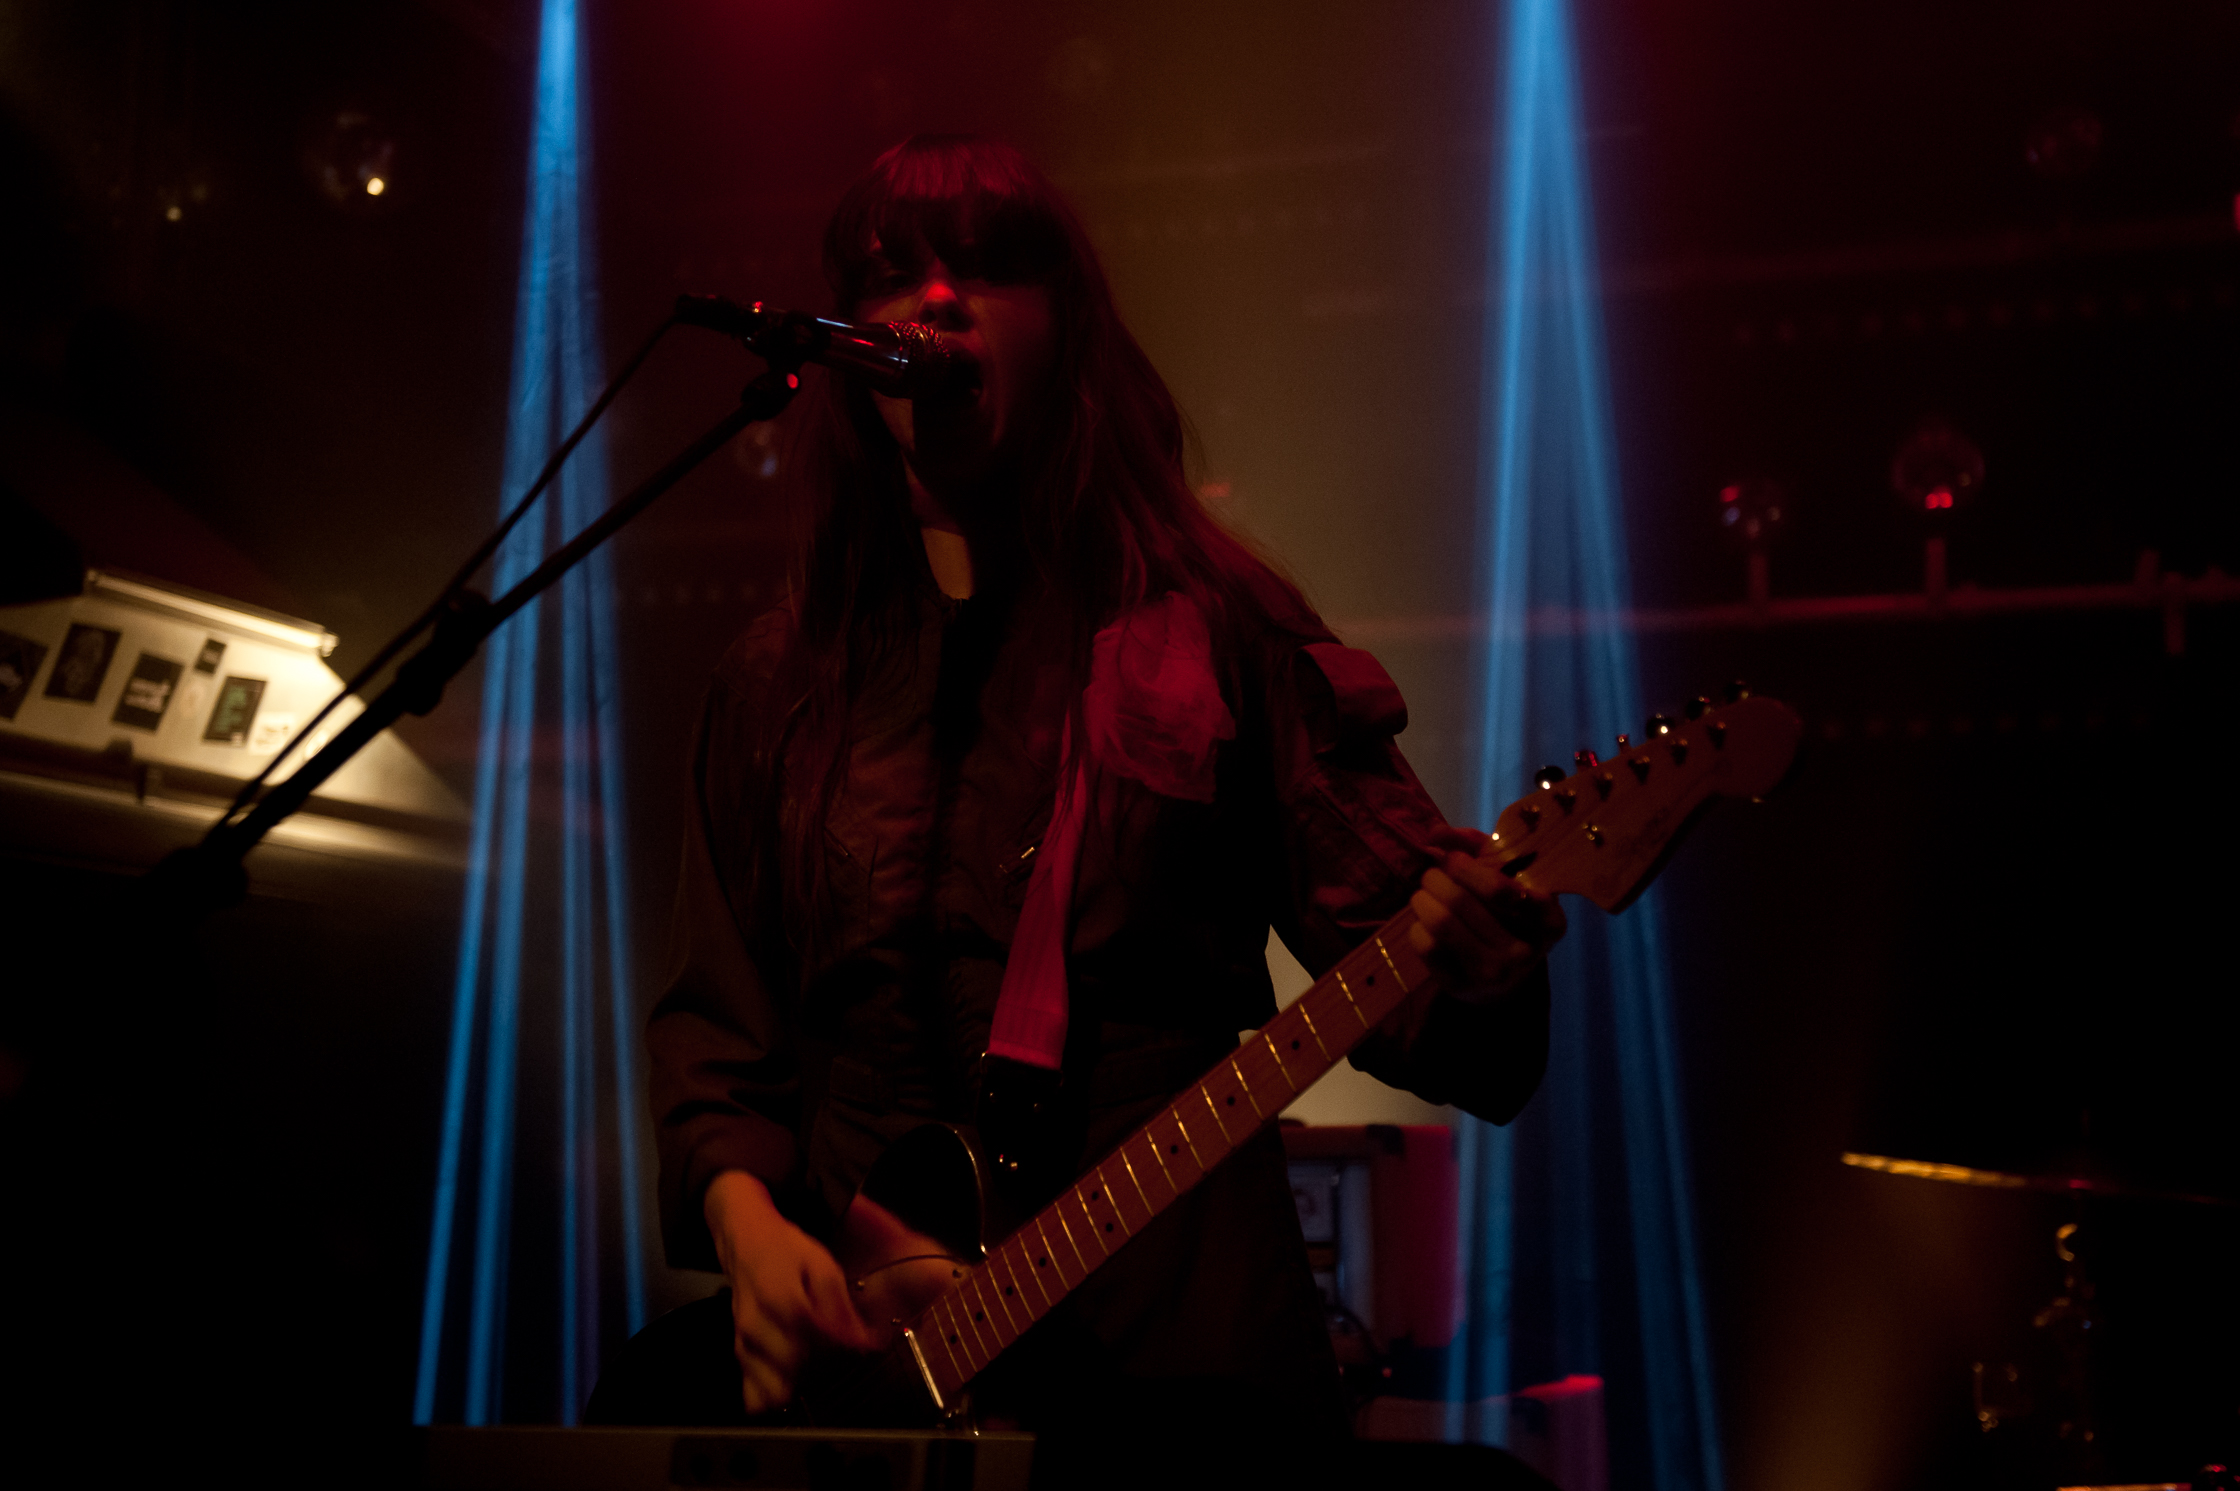 2016_09_23_arteather_lebutcherettes-1179